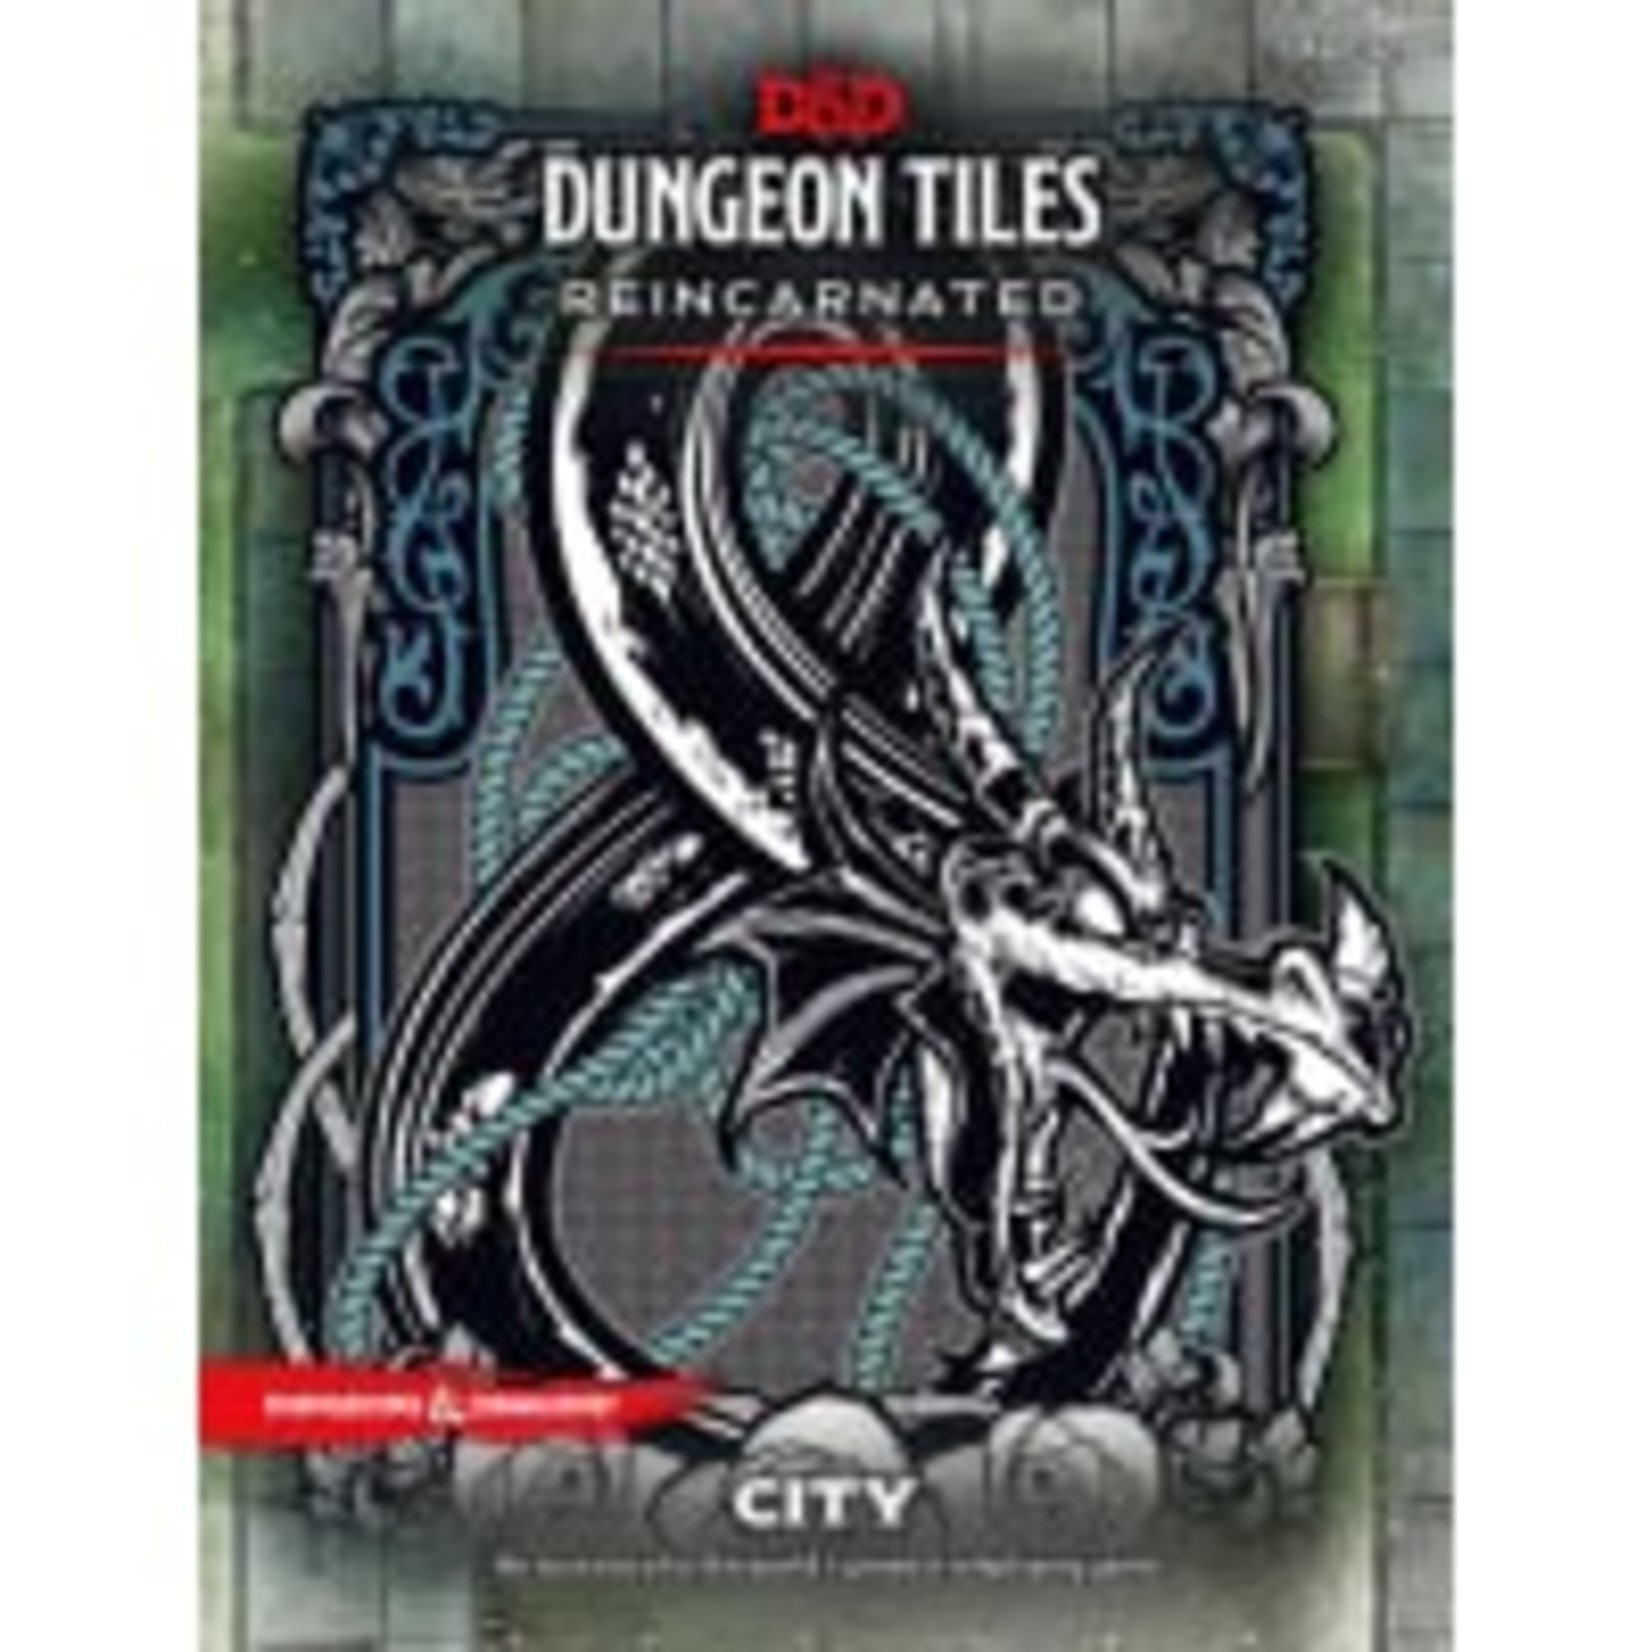 Wizards of the Coast Dungeon Tiles Reincarnated: City